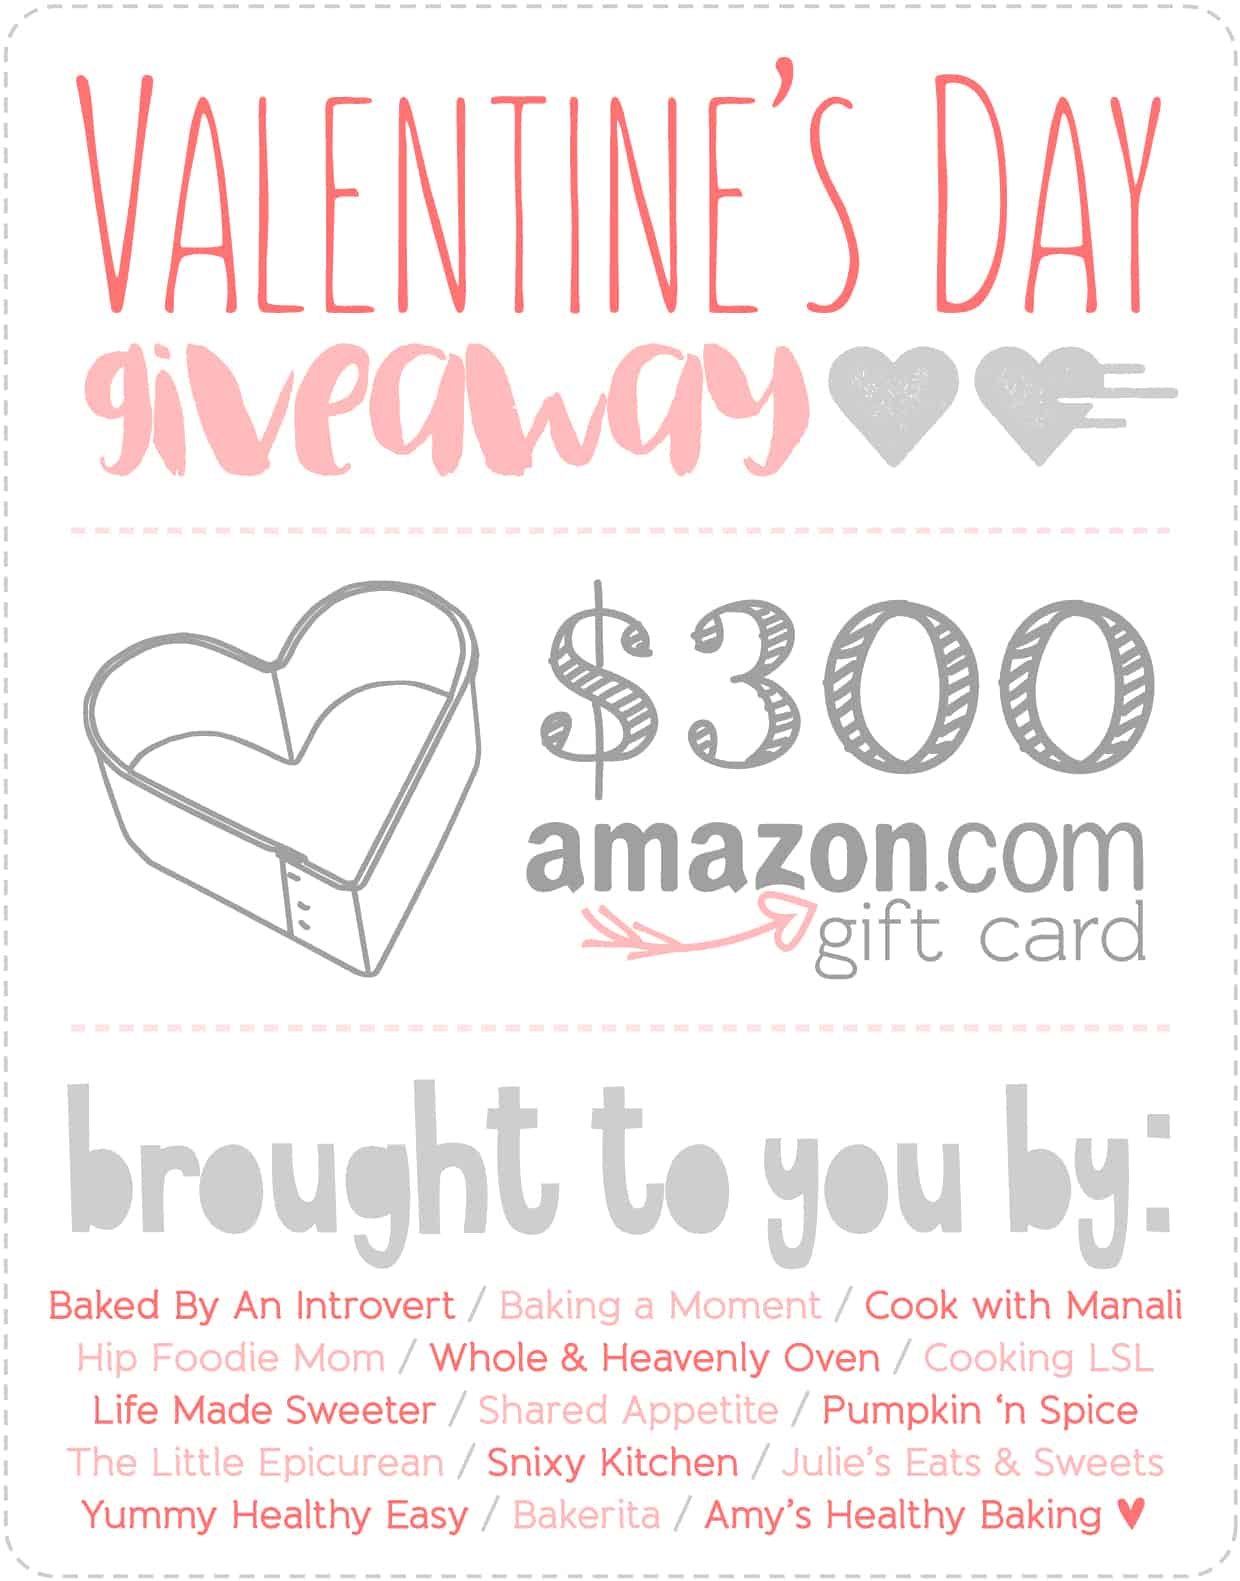 ValentinesDayGiveaway-Large